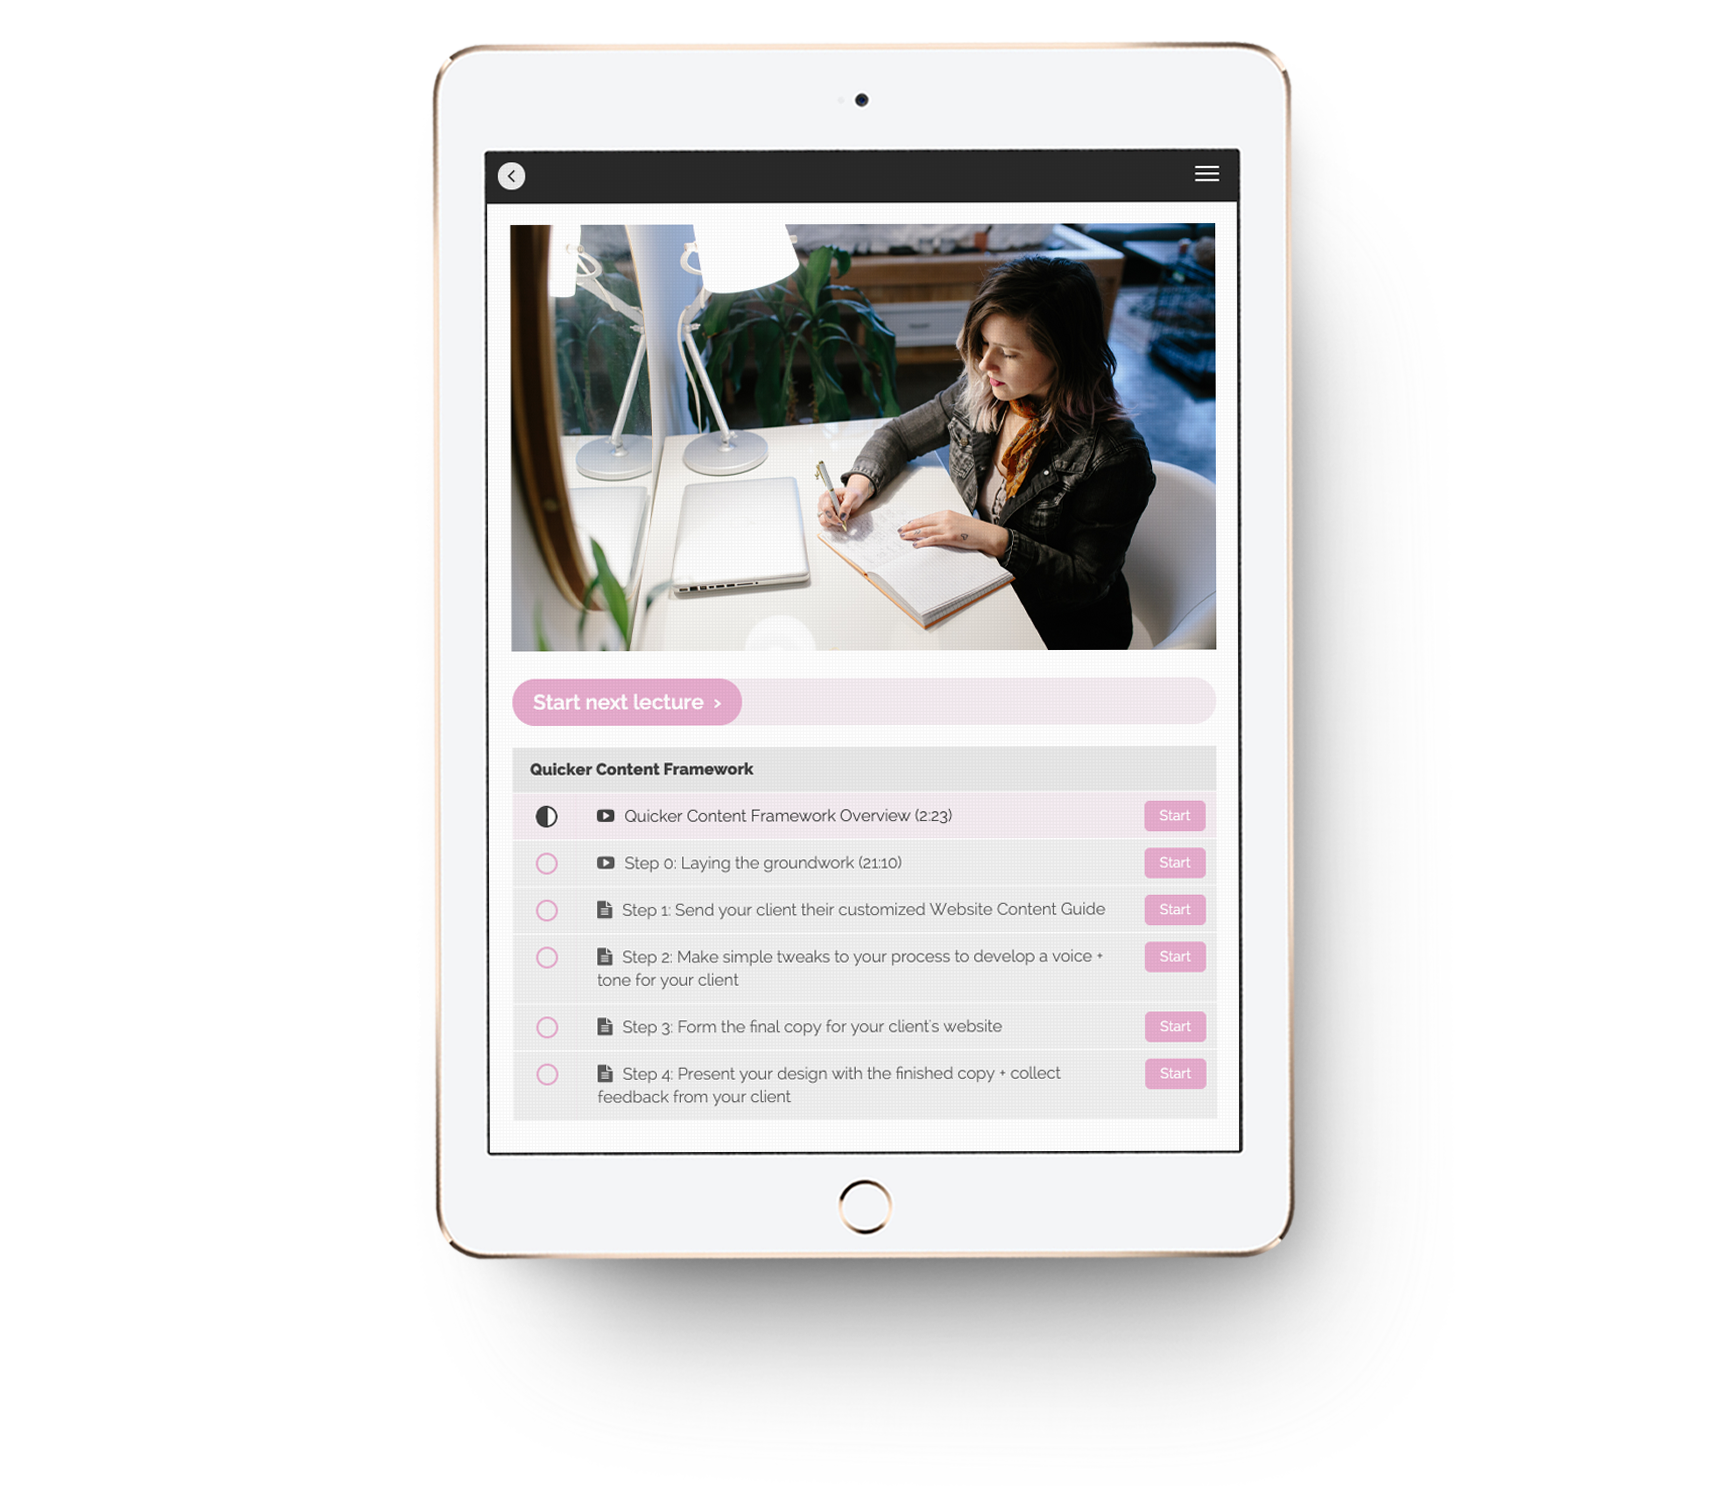 Quicker-Content-Framework-Teachable-lessons-mockup-on-iPad